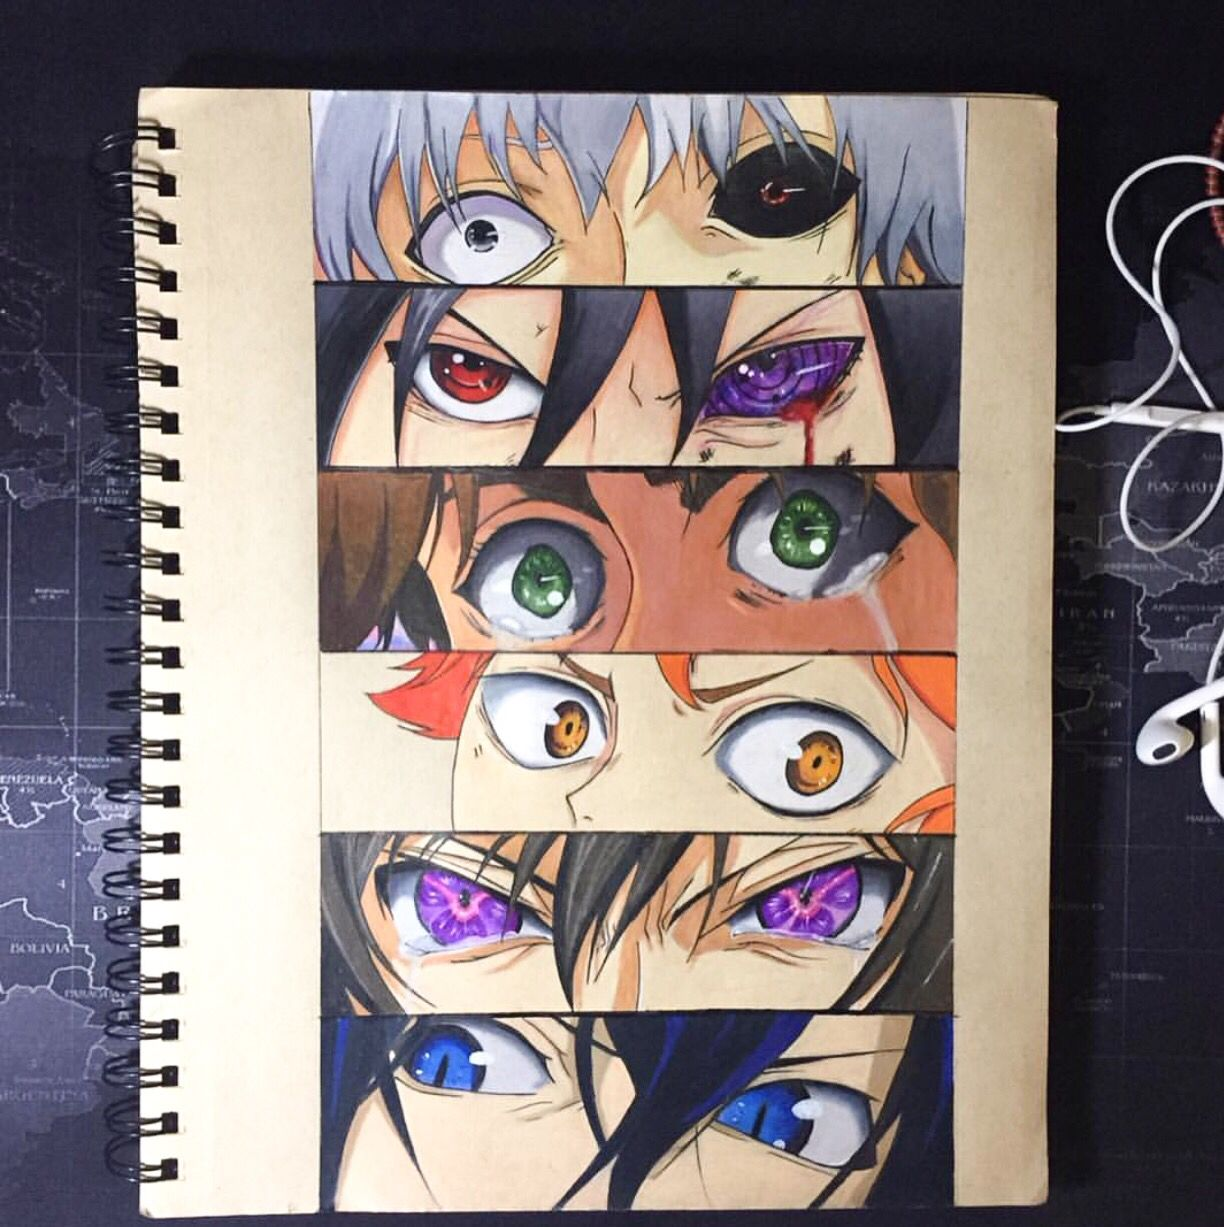 Can you guess which anime characters these eyes belong to